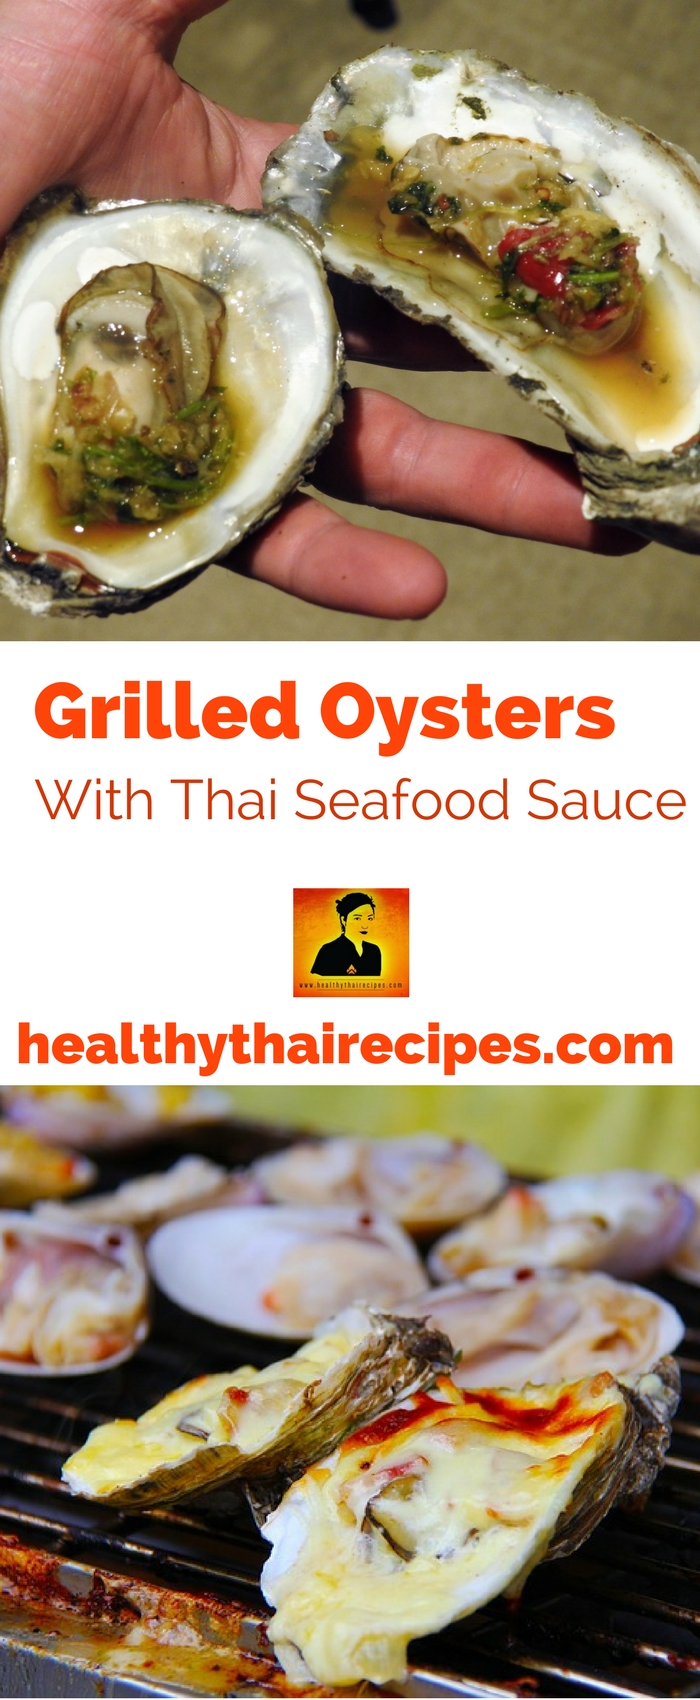 Grilled Oysters With Thai Seafood Sauce